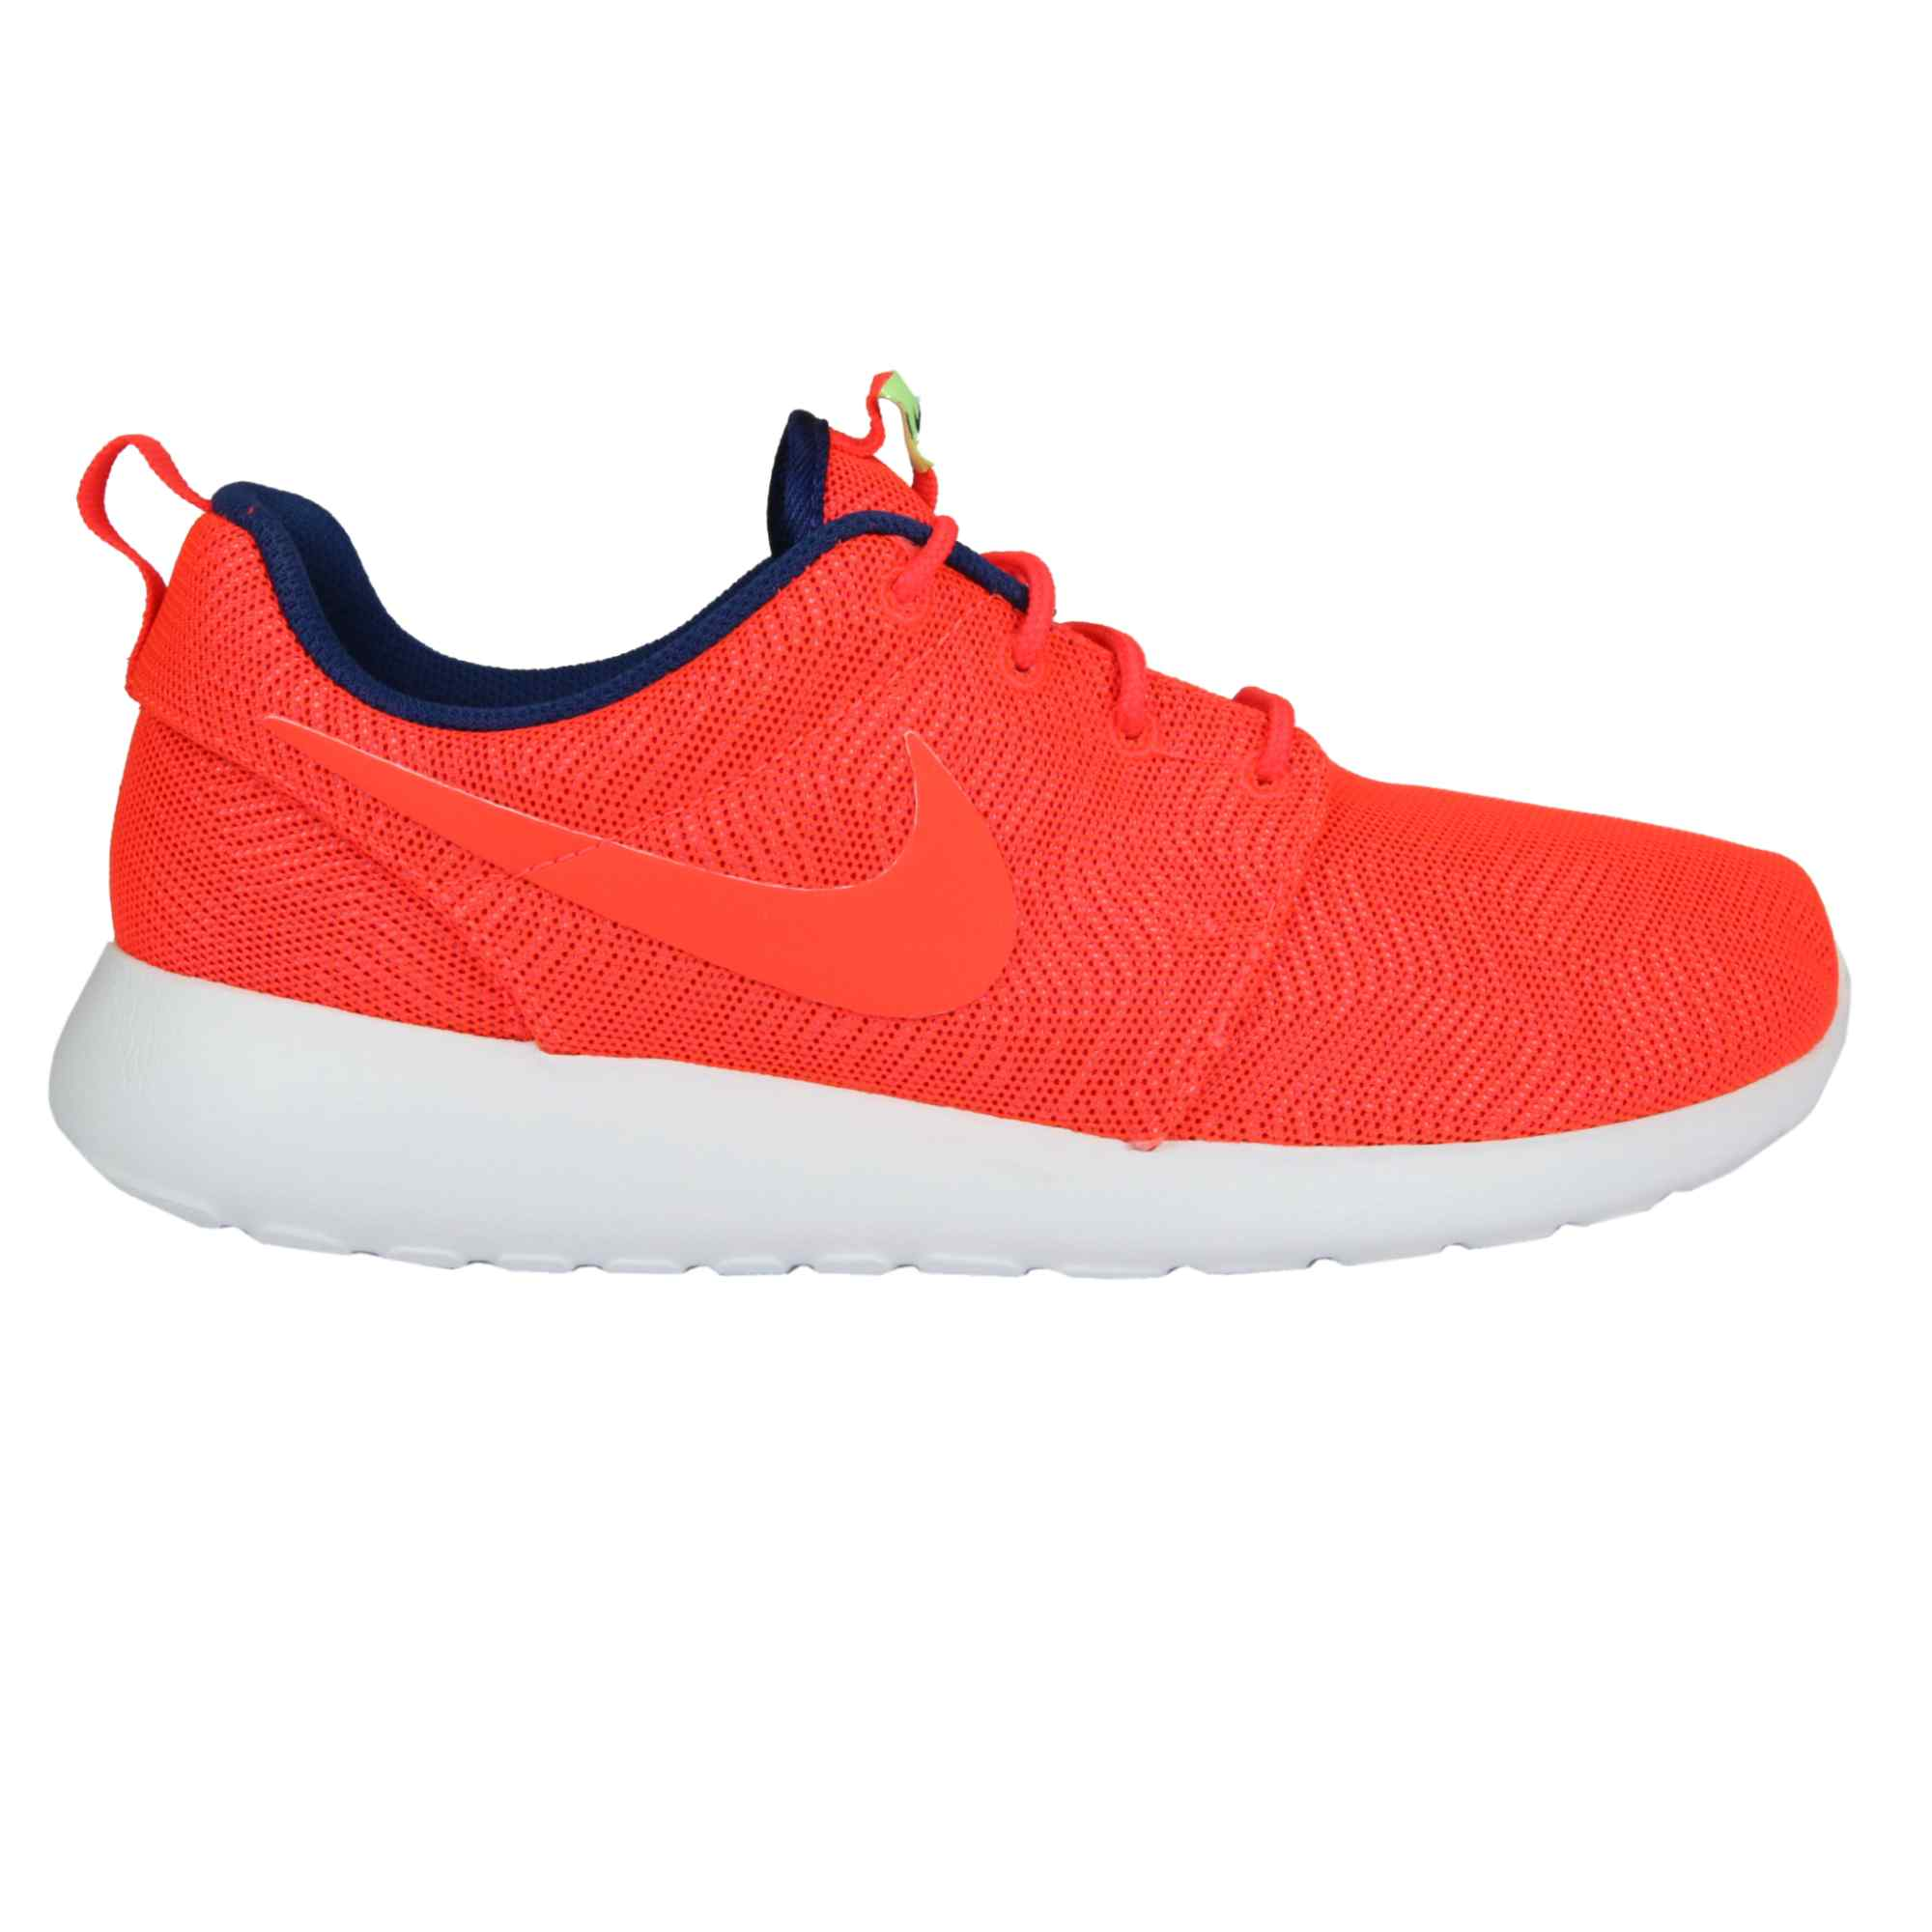 Nike Roshe One Shoes Trainers Sneakers Women's | eBay